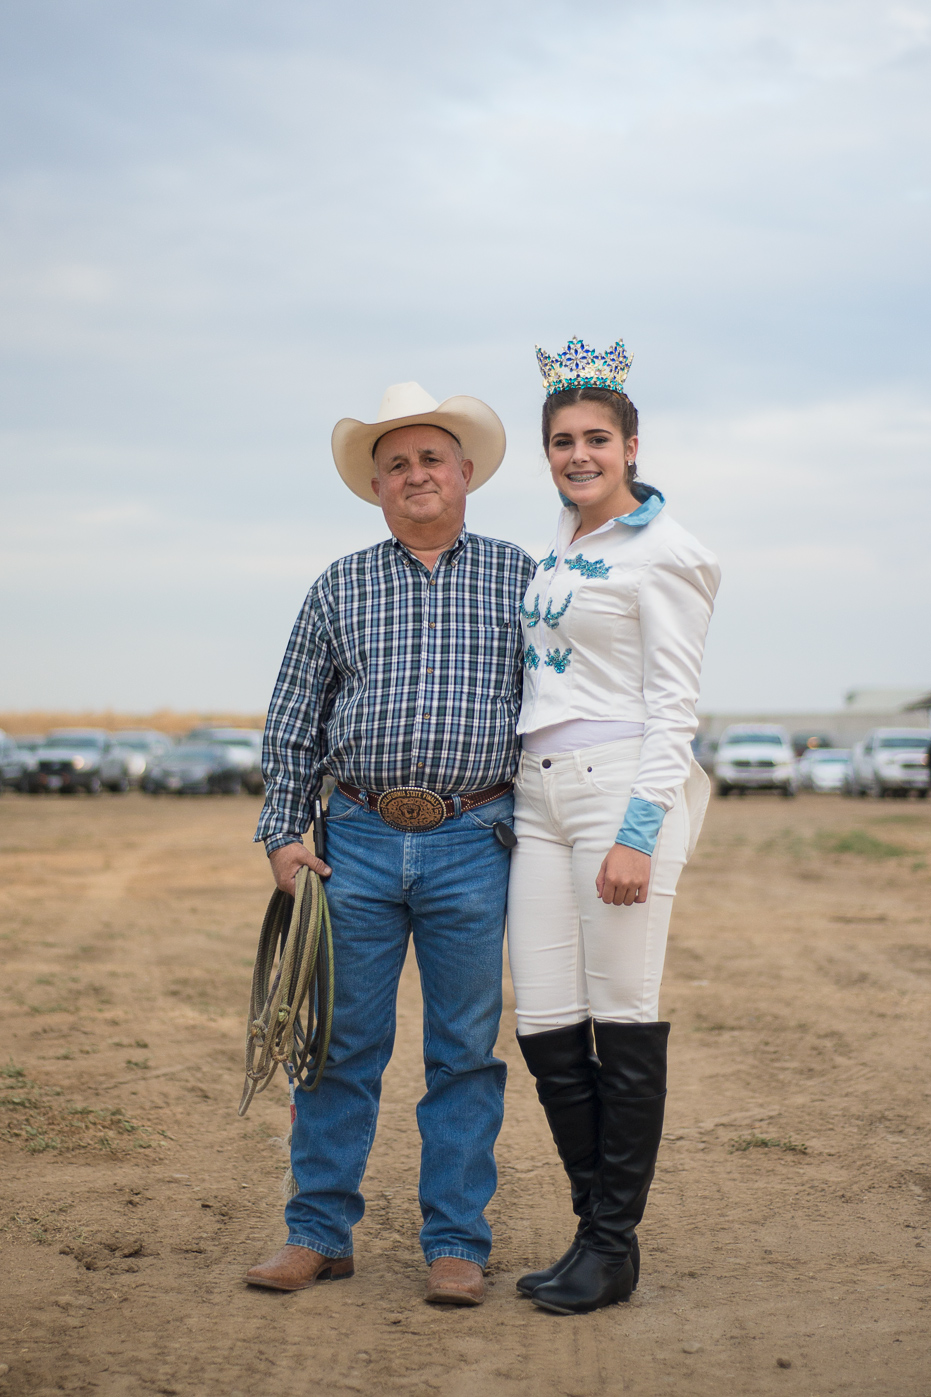 Central valley dairy farmer portrait